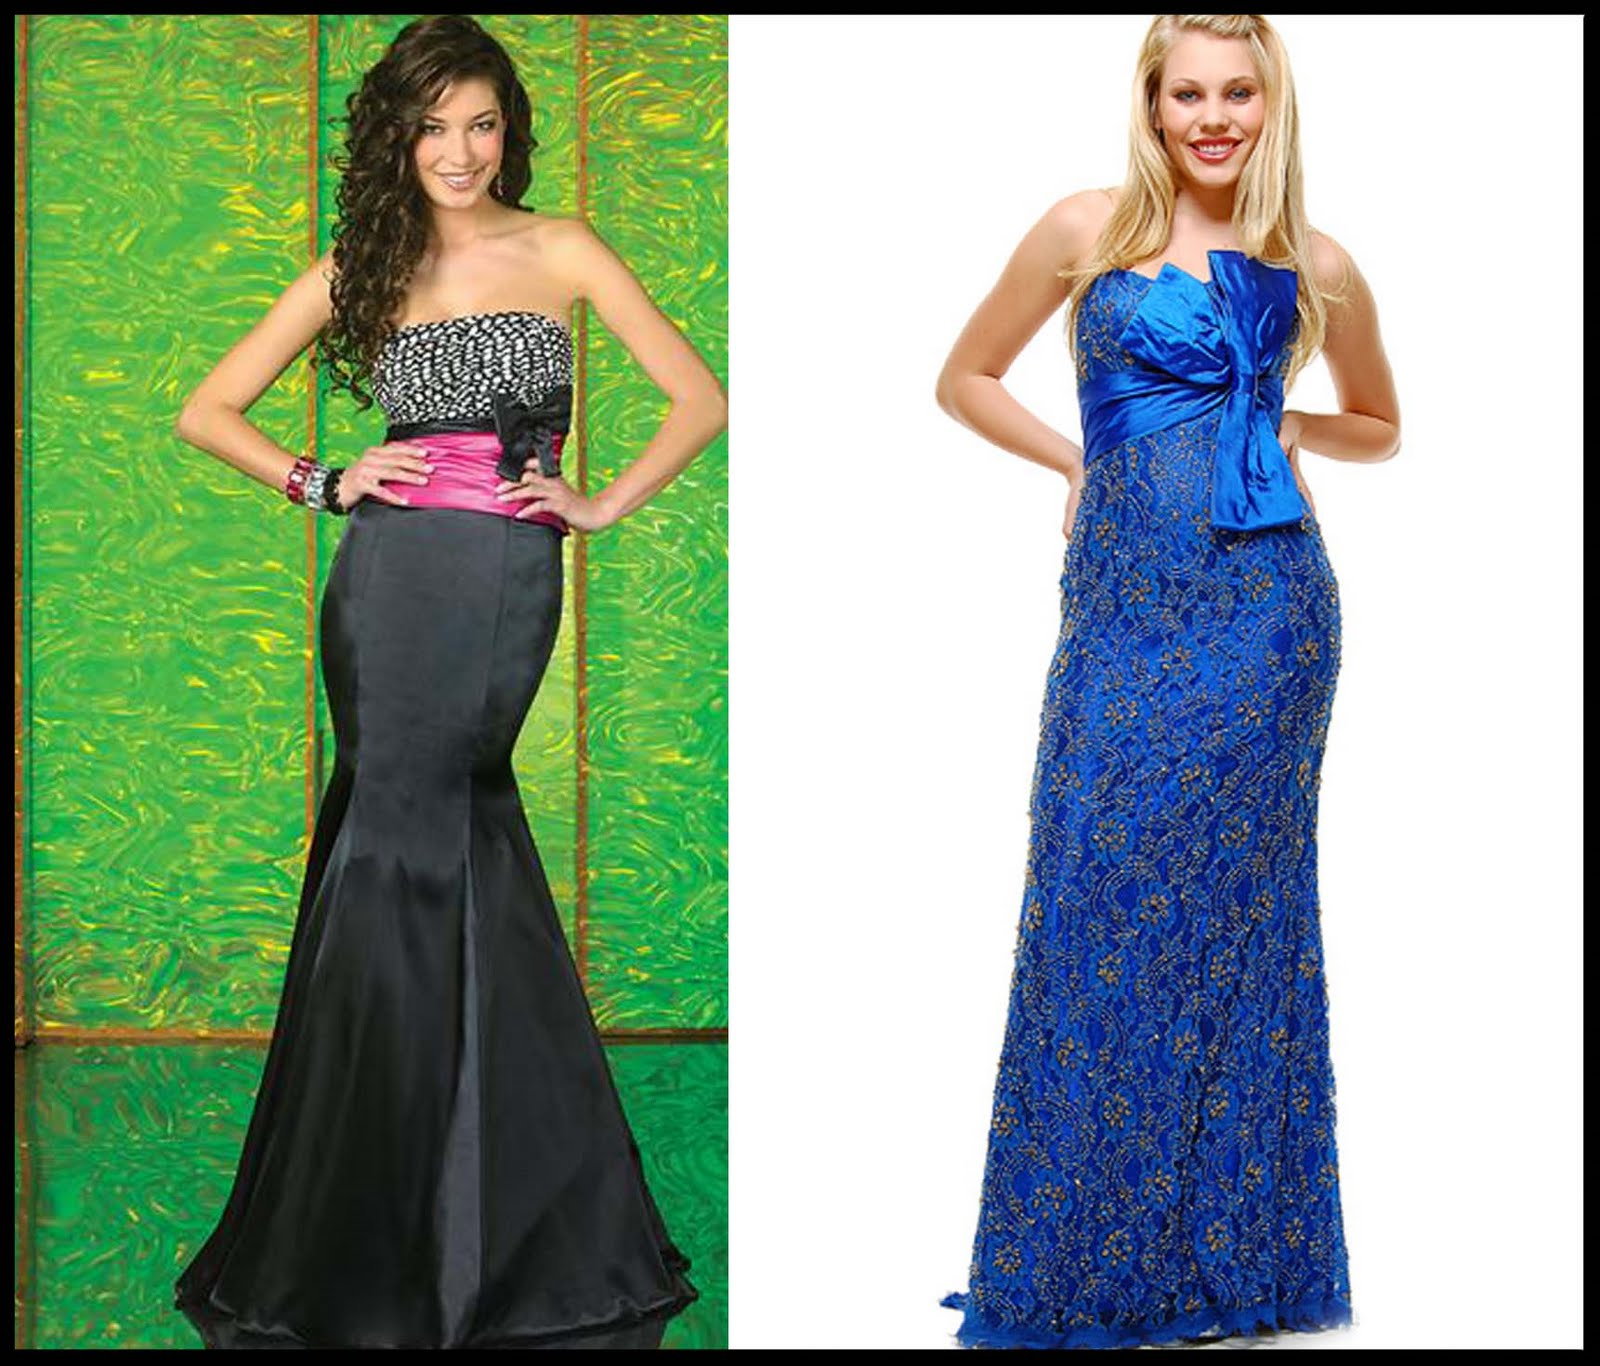 Looking for Pageant Dresses? Find evening and formal dresses for beauty ...